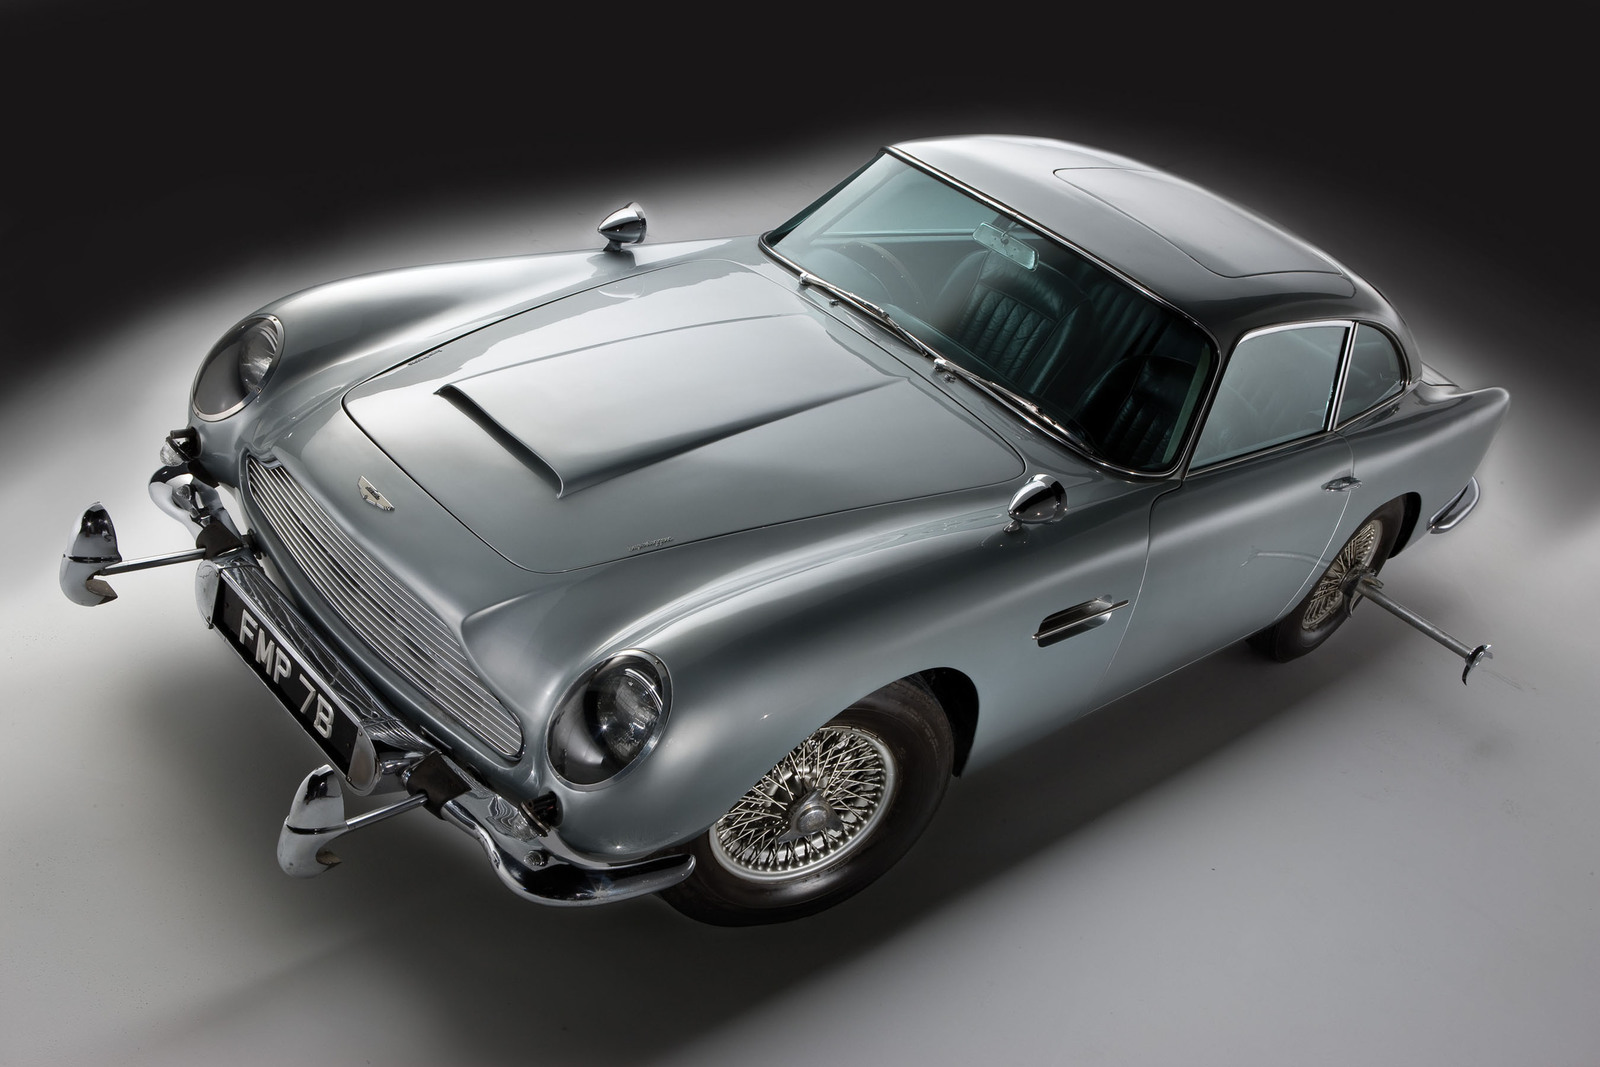 james bond aston martin db5 sells for $4.1 million